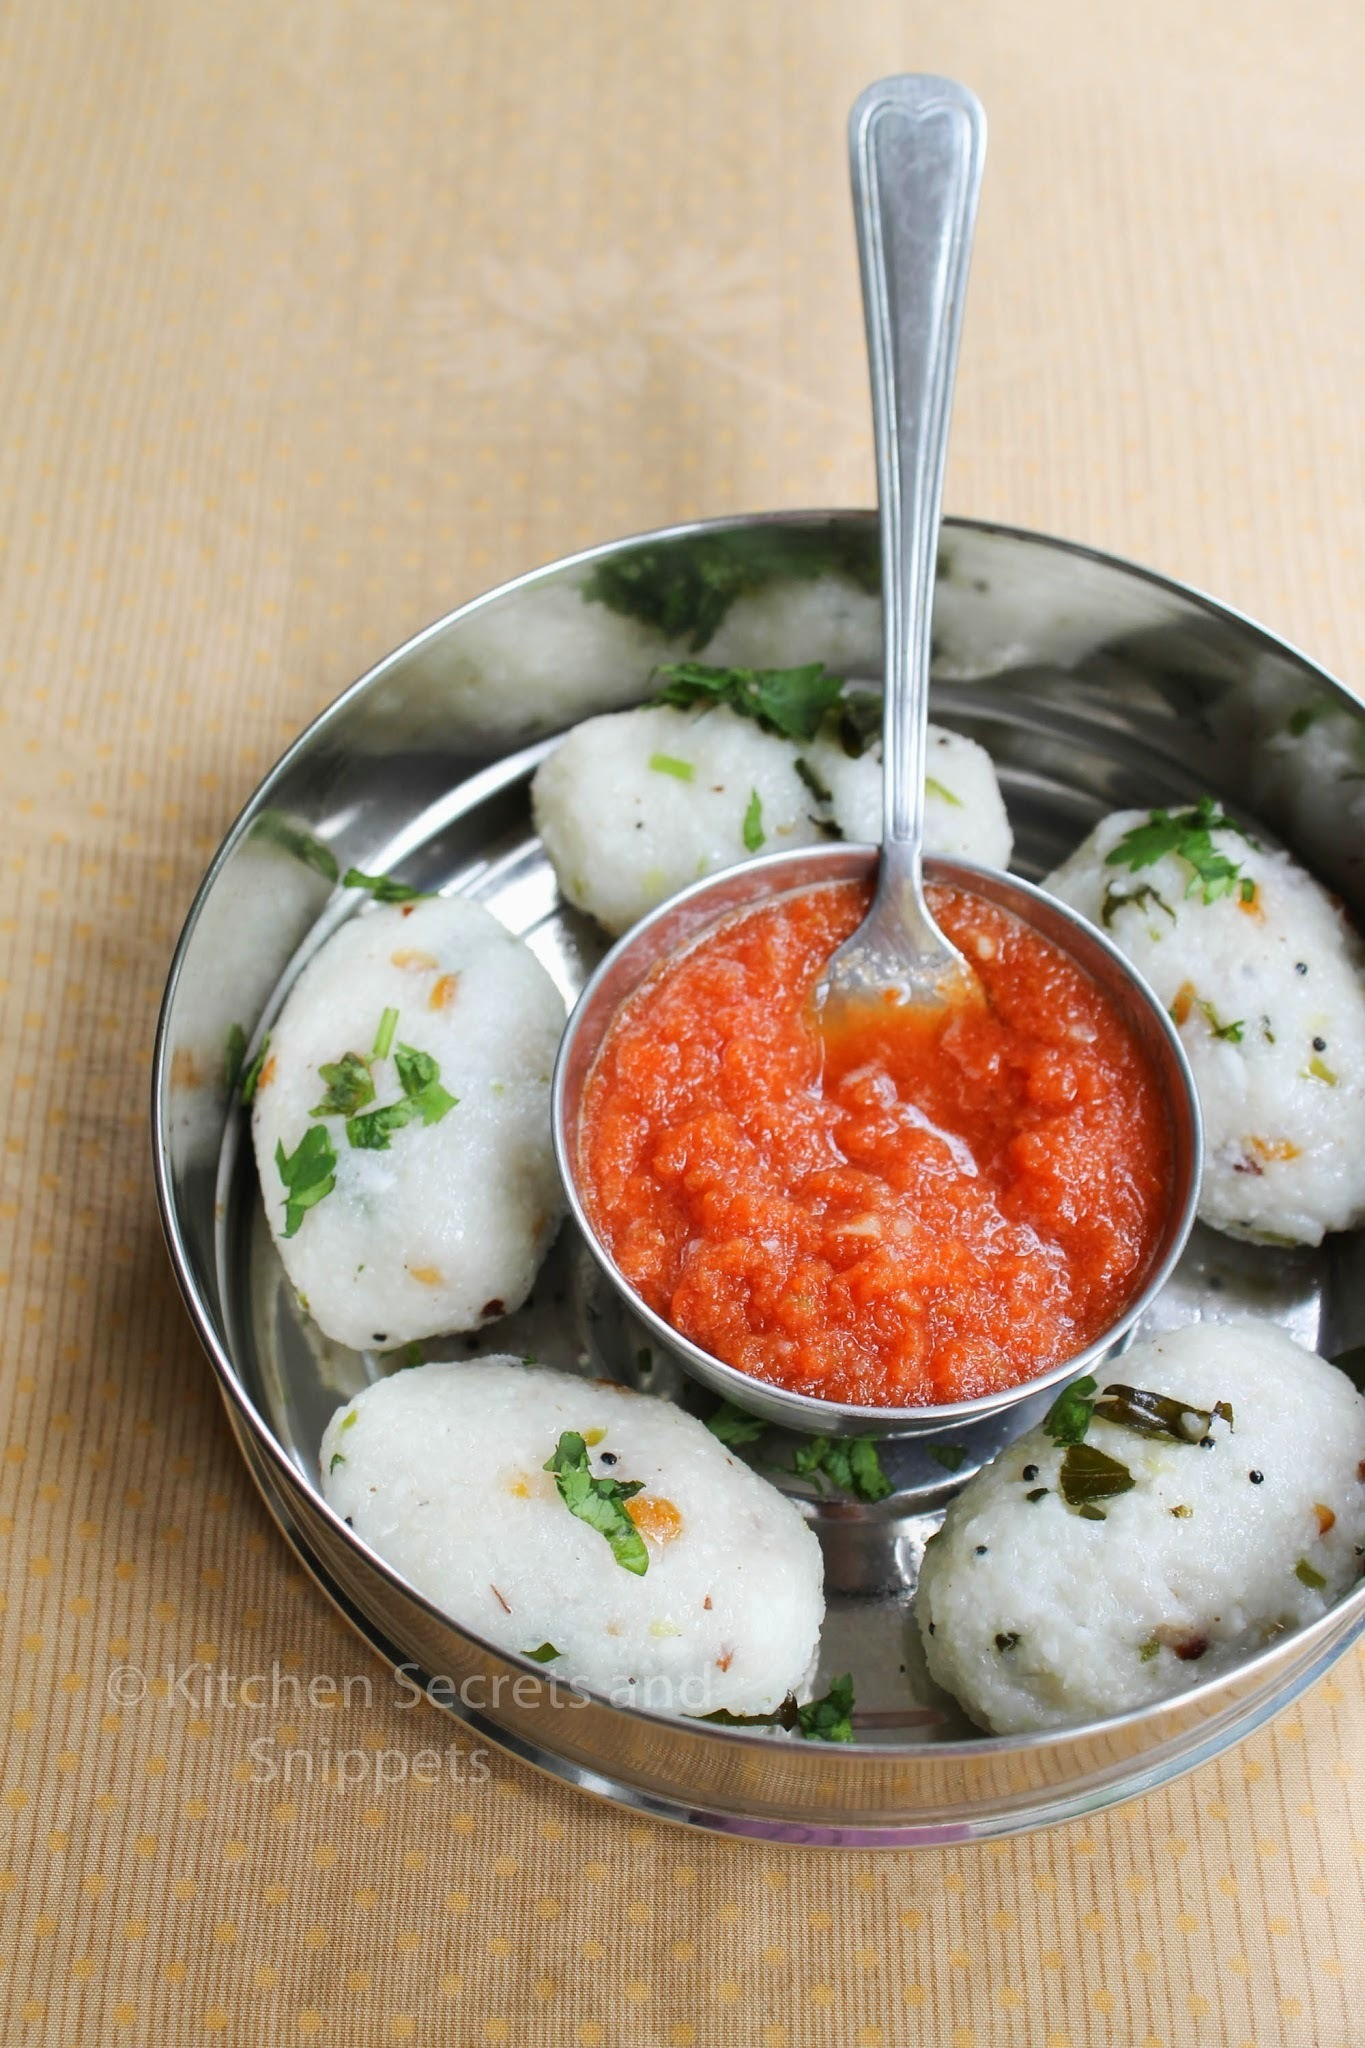 Upma Kozhukattai / Pidi Kozhukattai / Steamed rice Balls and Onion Tomato Chutney